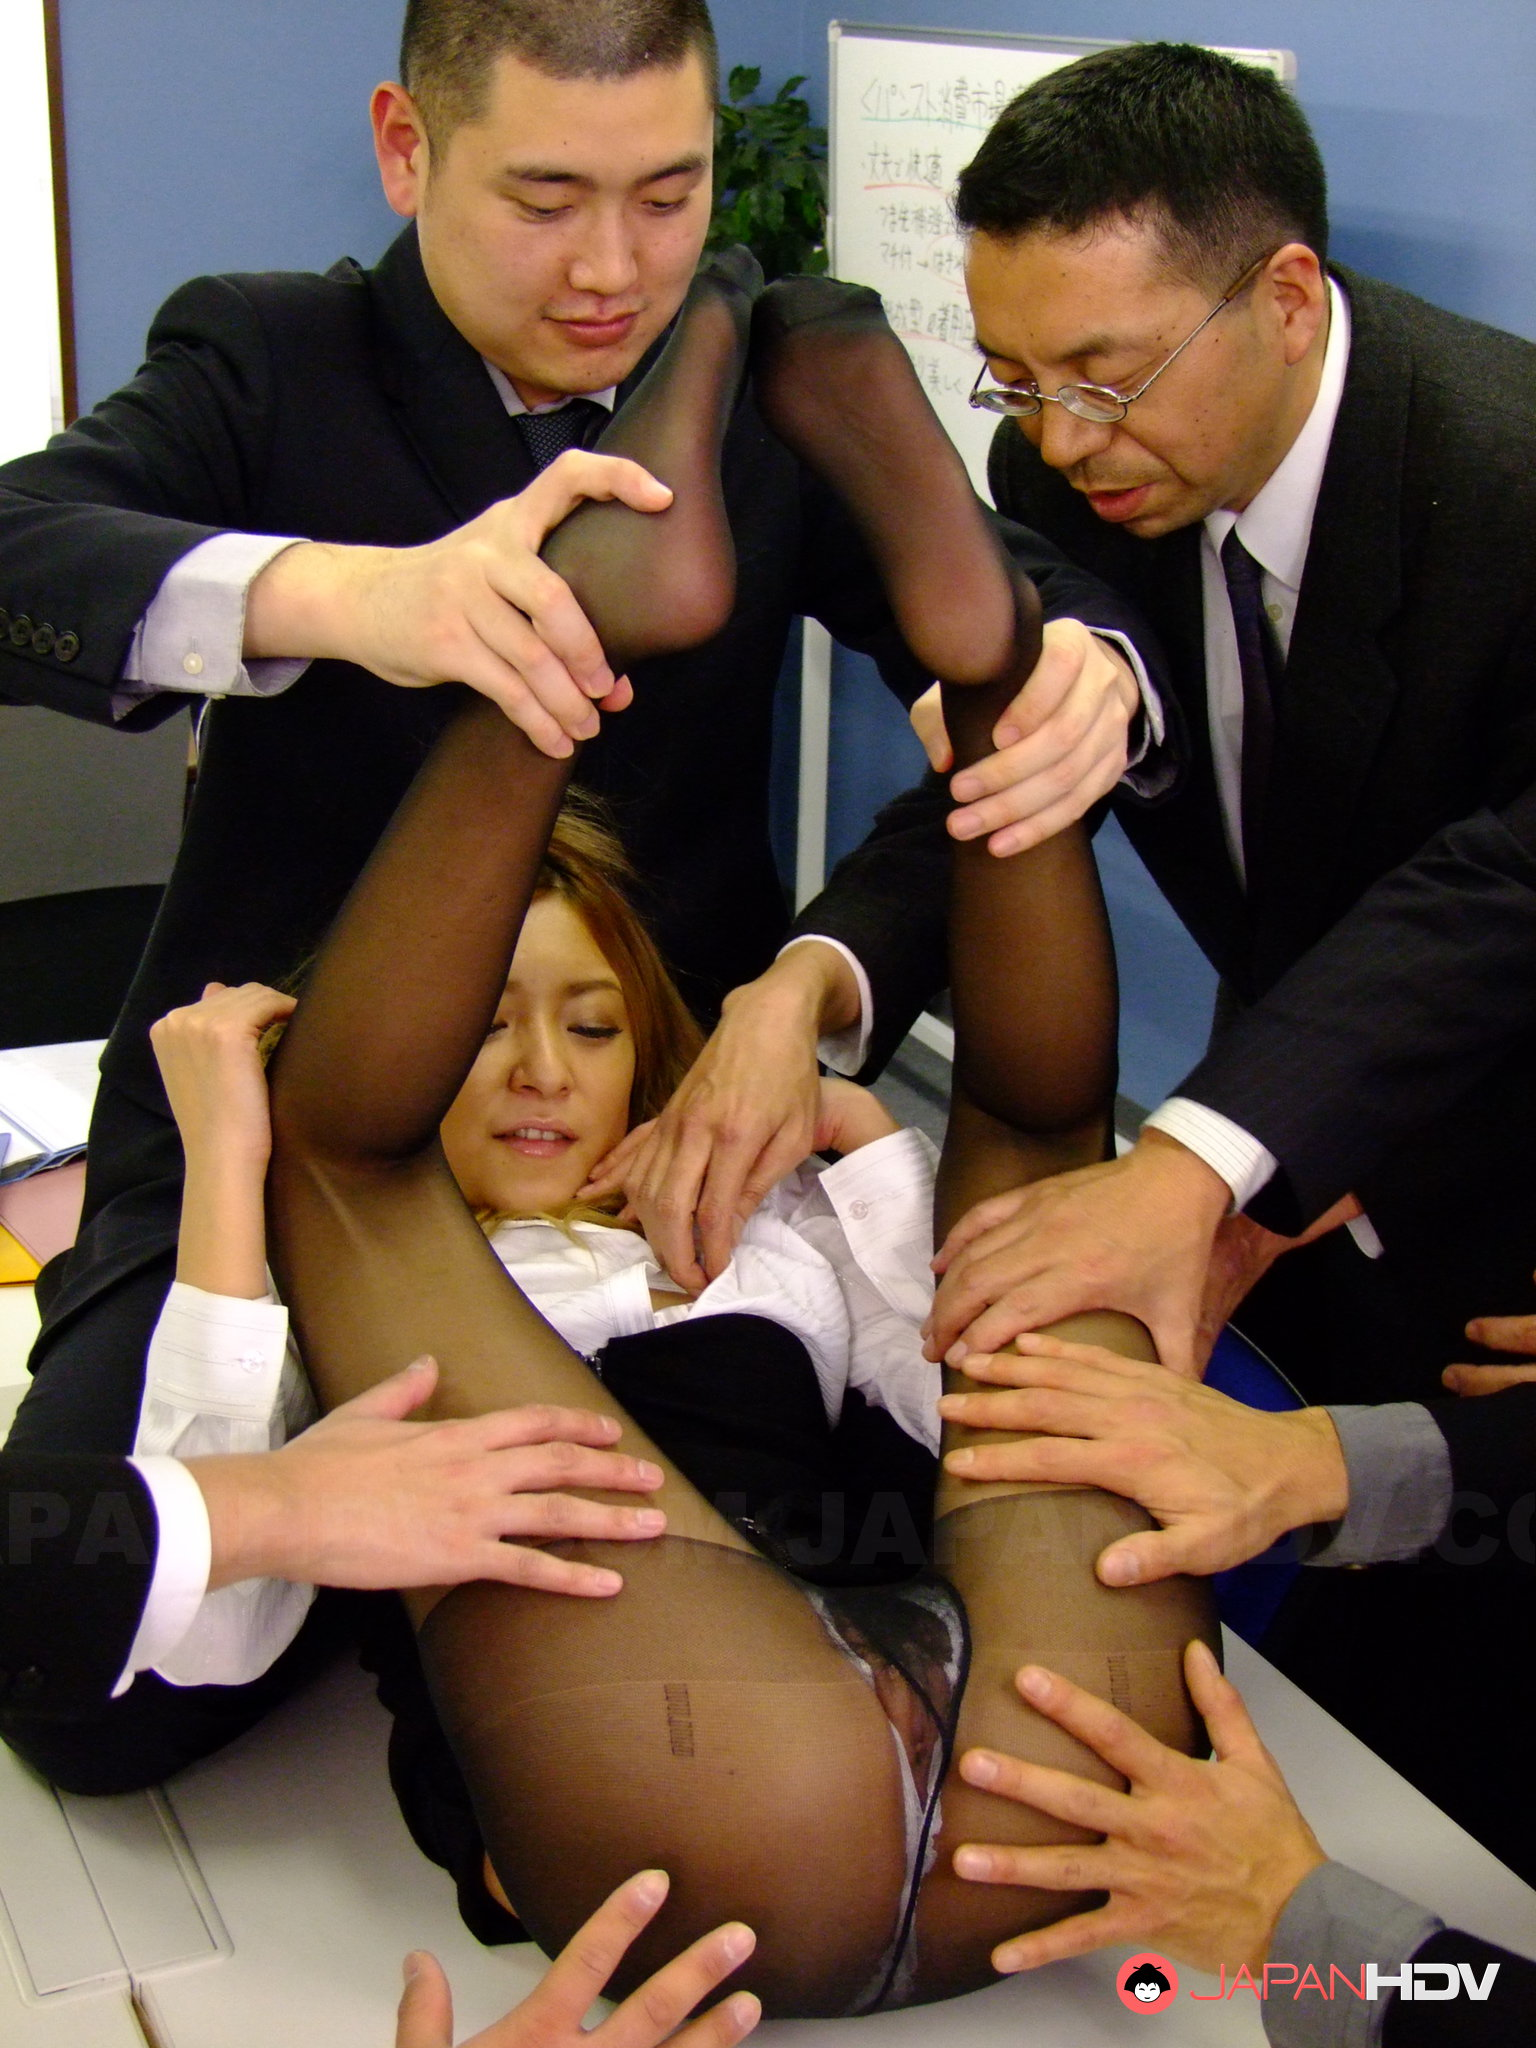 Japan office nasty sex